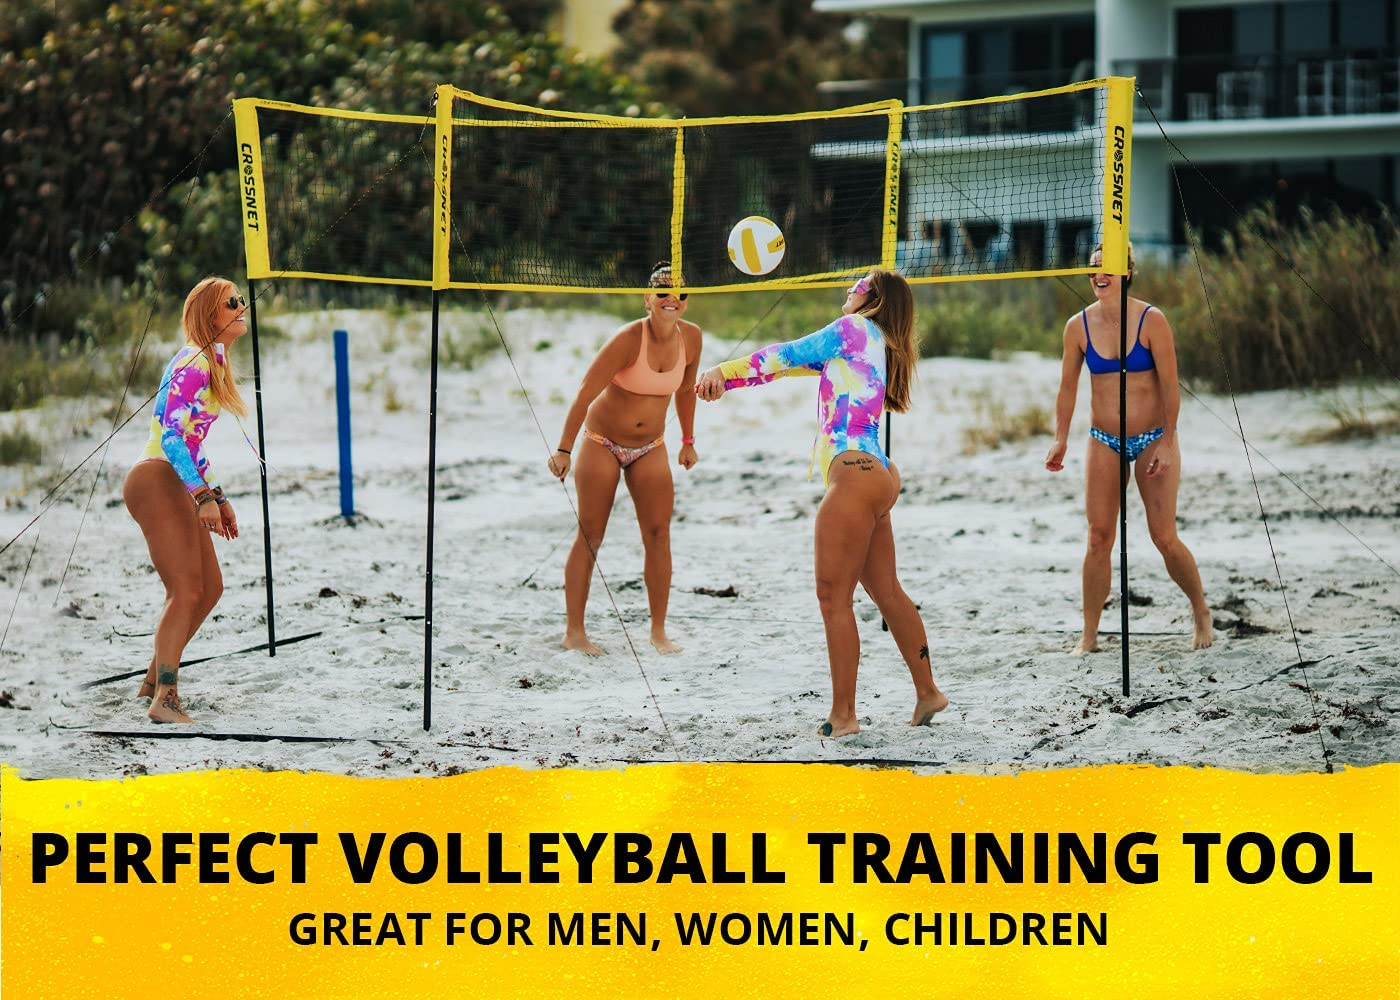 CROSSNET Four Square Volleyball Net & Game Set - Volleyball Set for Backyards - Yard Games for Kids and Adults Game Four Square Volleyball - Includes Poles, Carrying Backpack